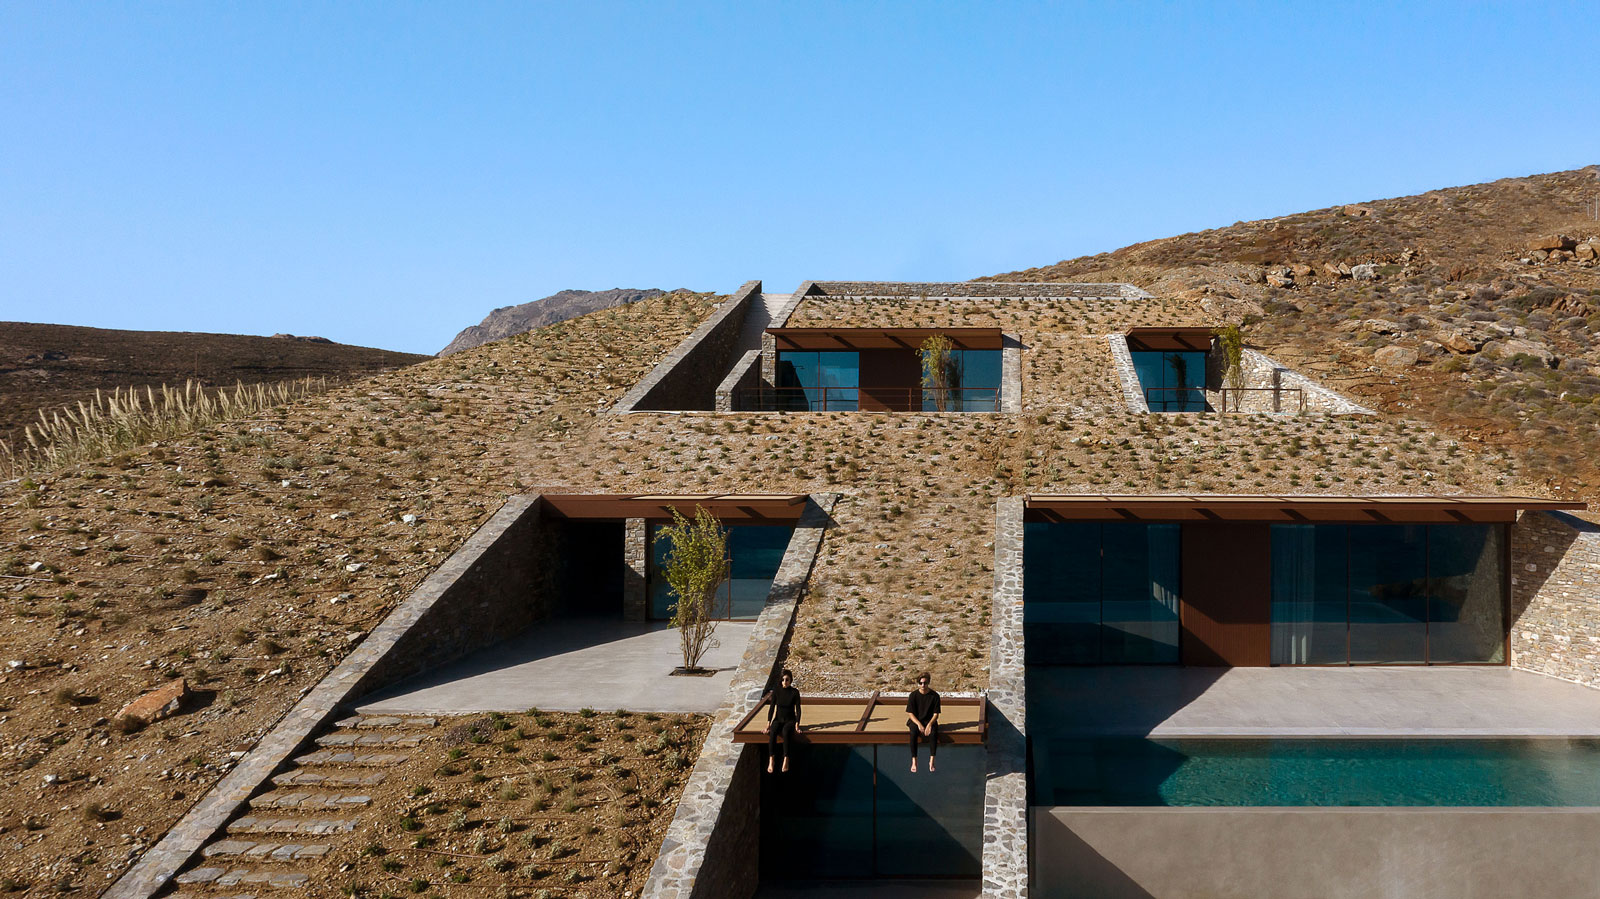 mold-architects-ncaved-house-greece